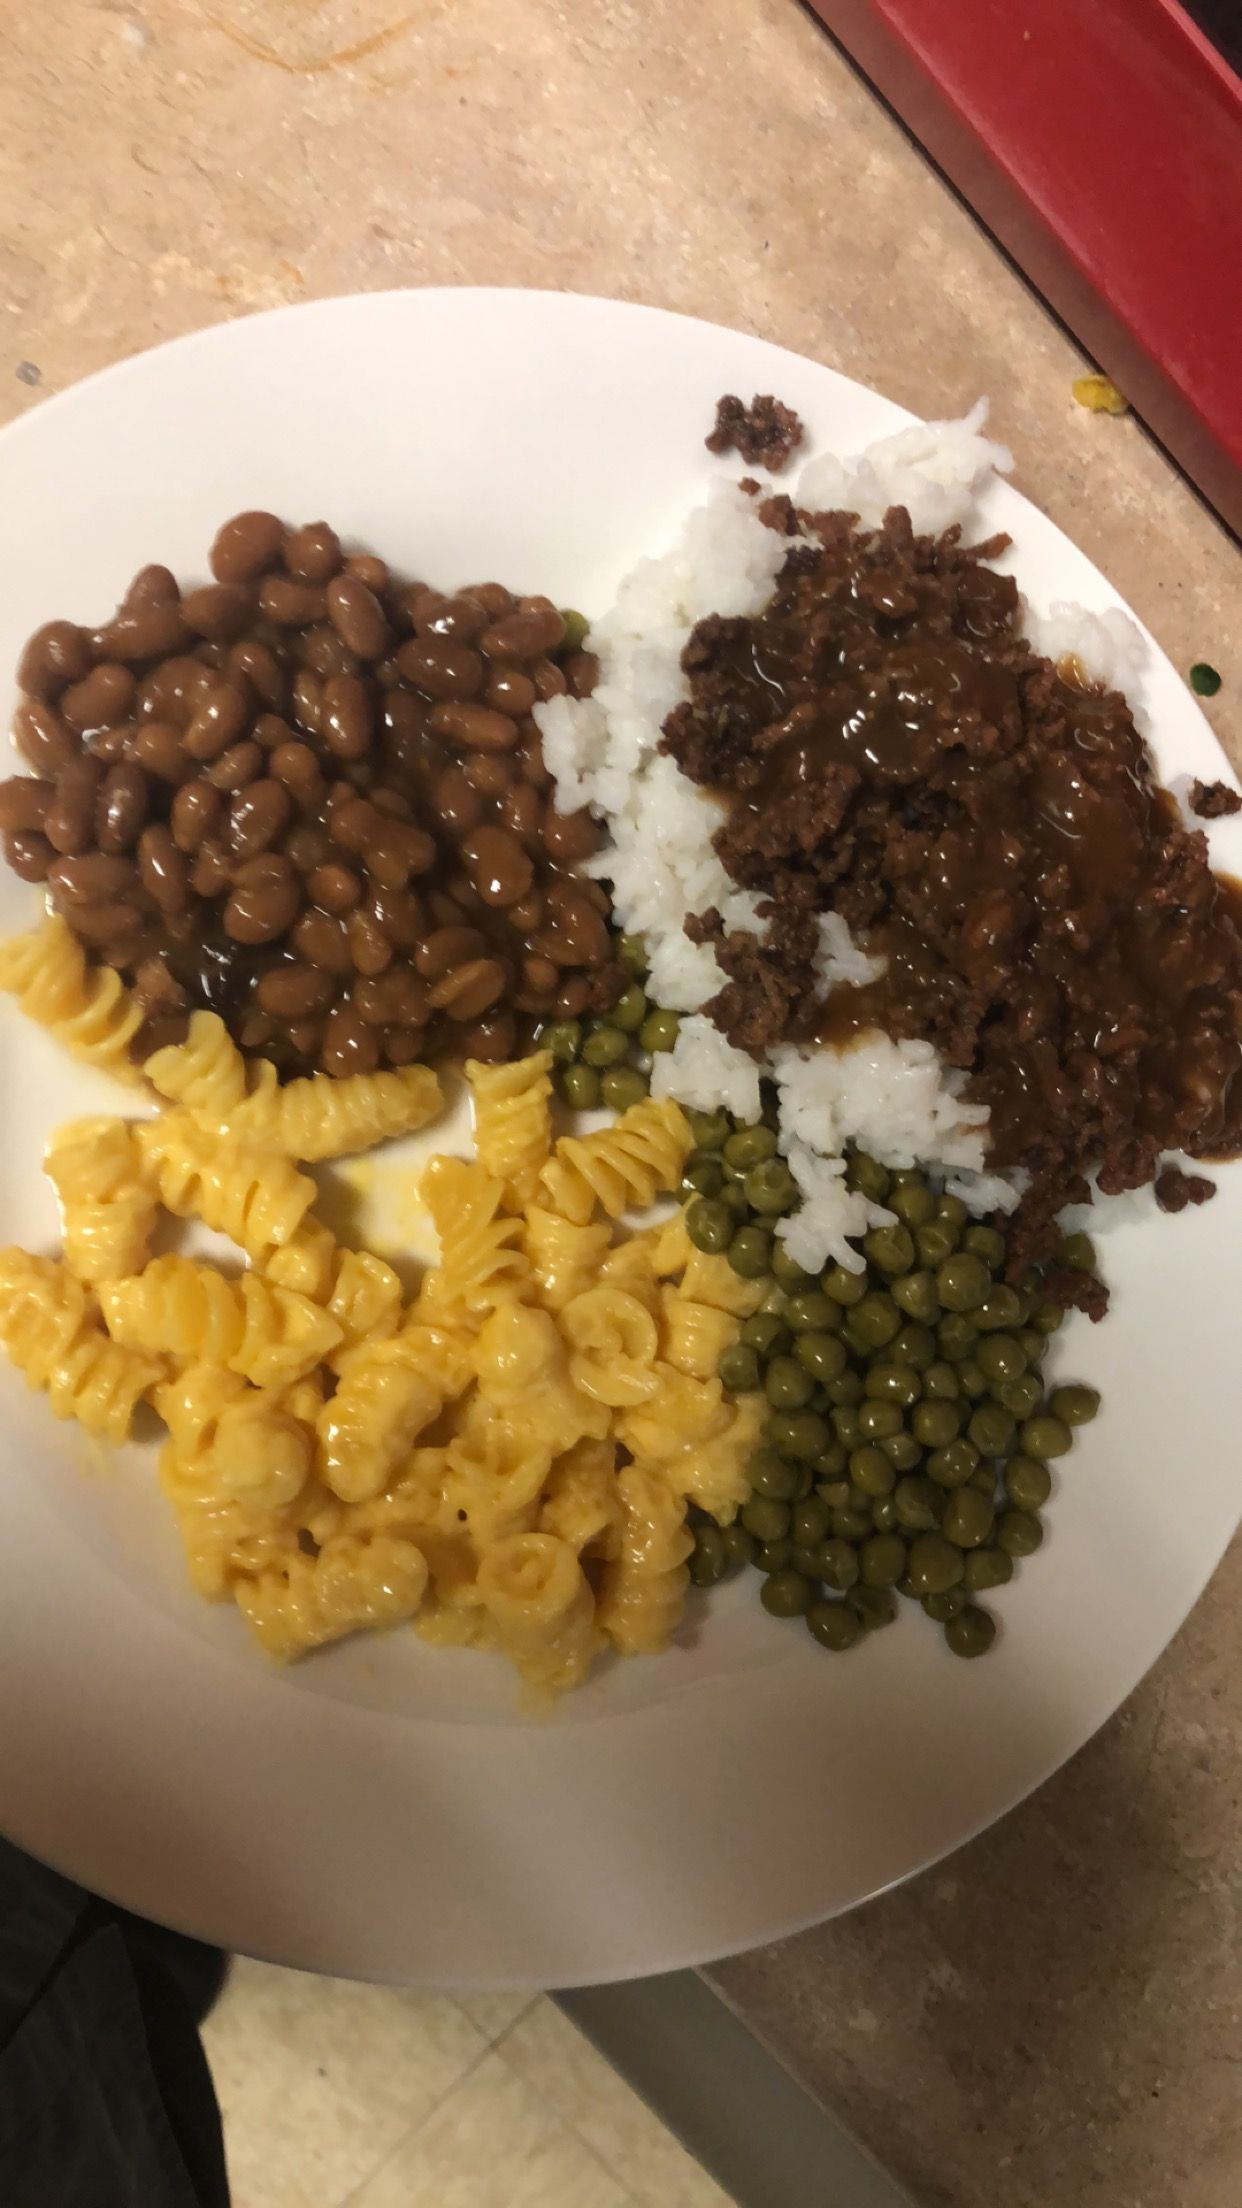 Ground Beef With Brown Gravy White Rice Baked Beans Pasta Side Macaroni And Cheese Sweet Peas Pasta Sides Brown Gravy Bean Pasta